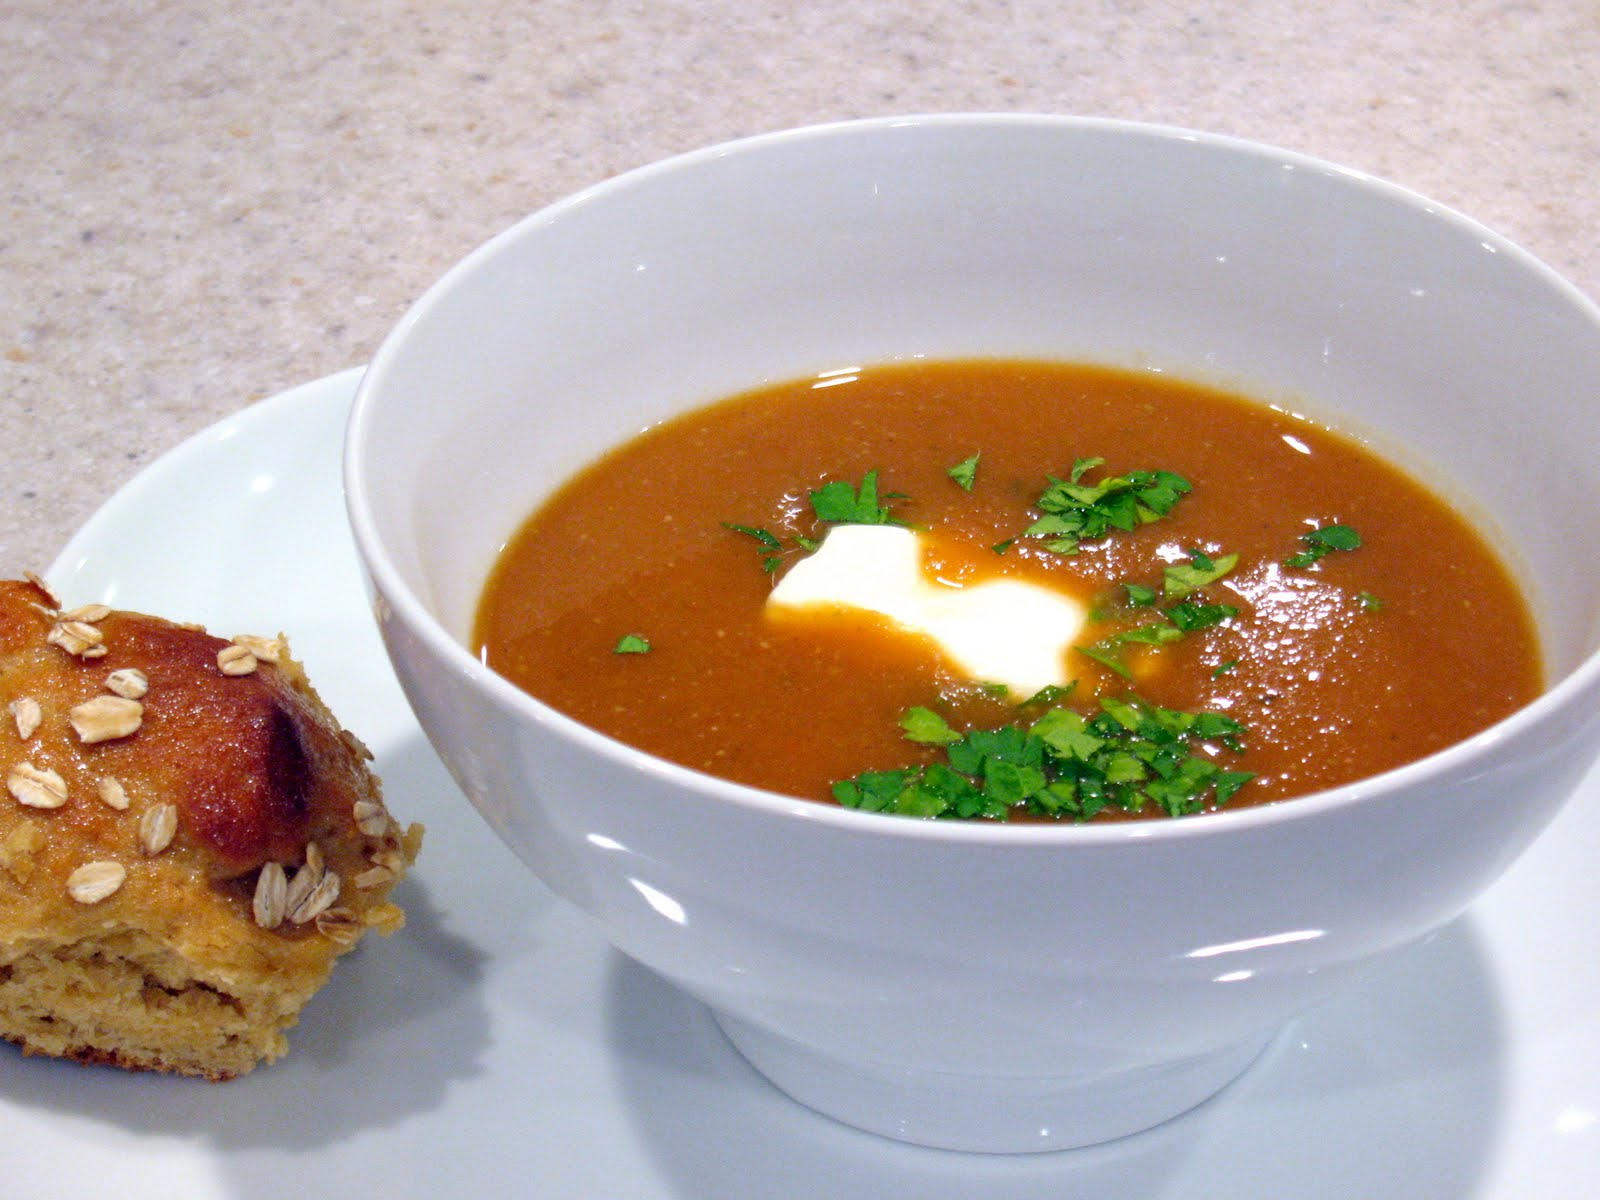 Happy Turkey Day Everyone! Red Lentil Apricot Soup - The Spiced Life